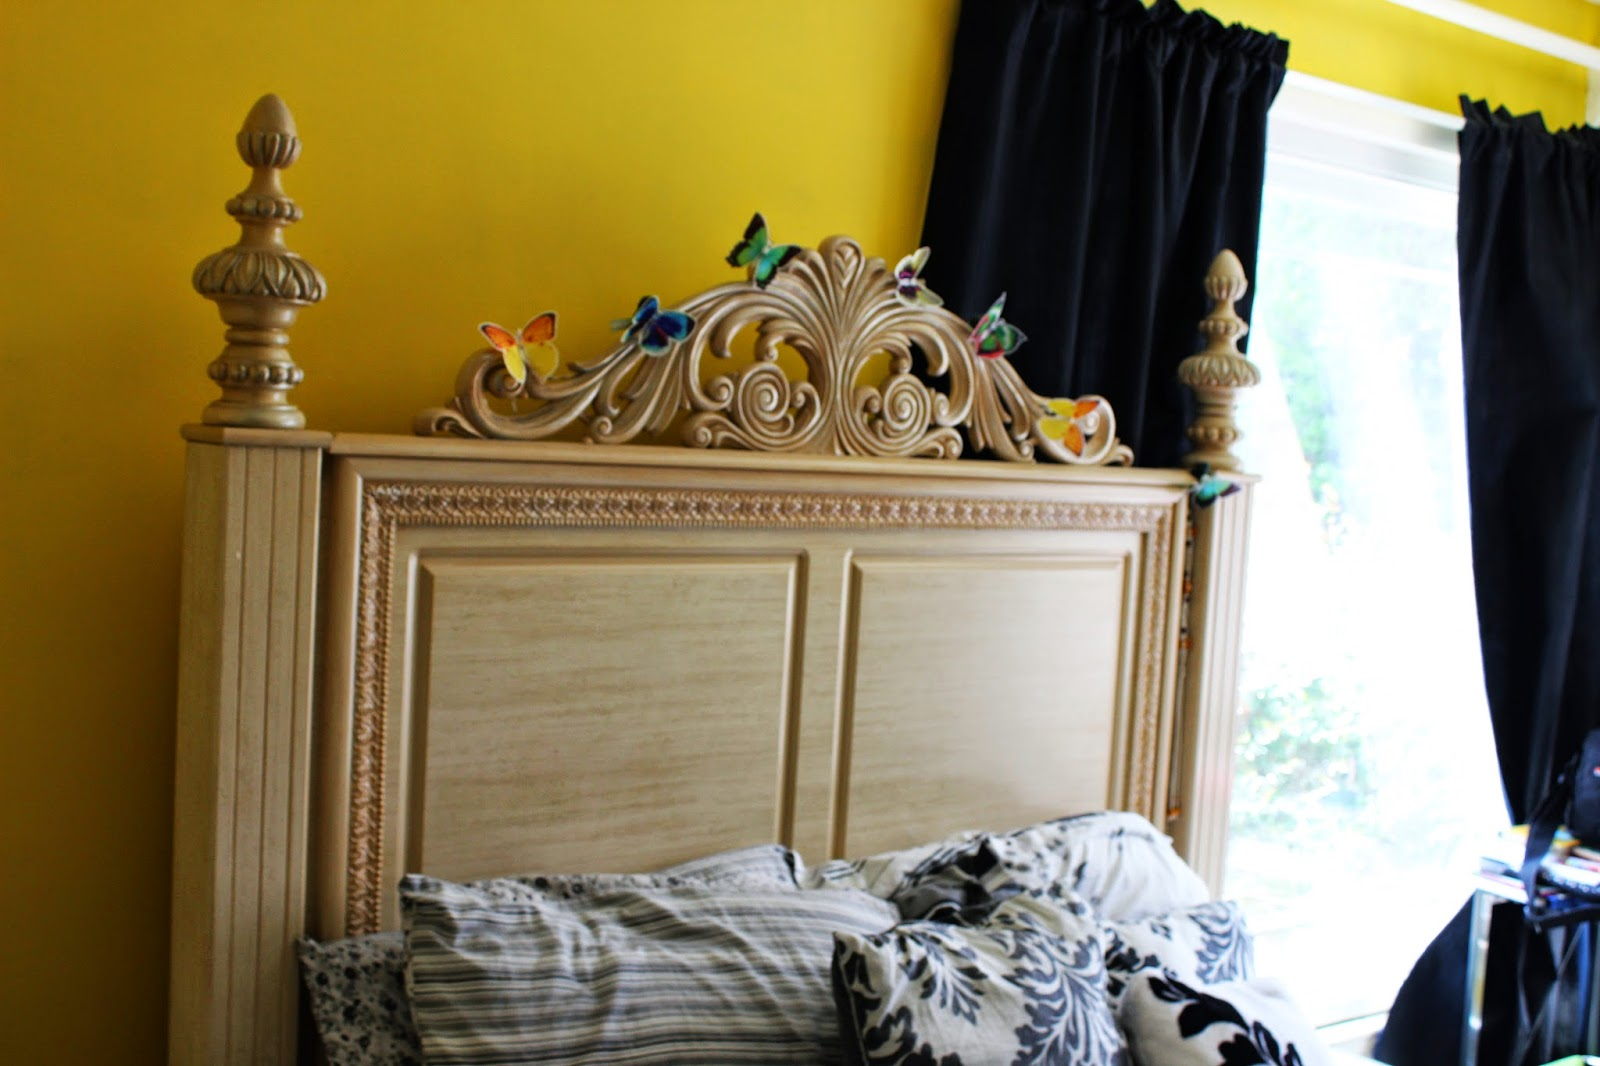 Perla sancheza my room decor las decoraci nes de mi - Decoraciones de cuartos ...